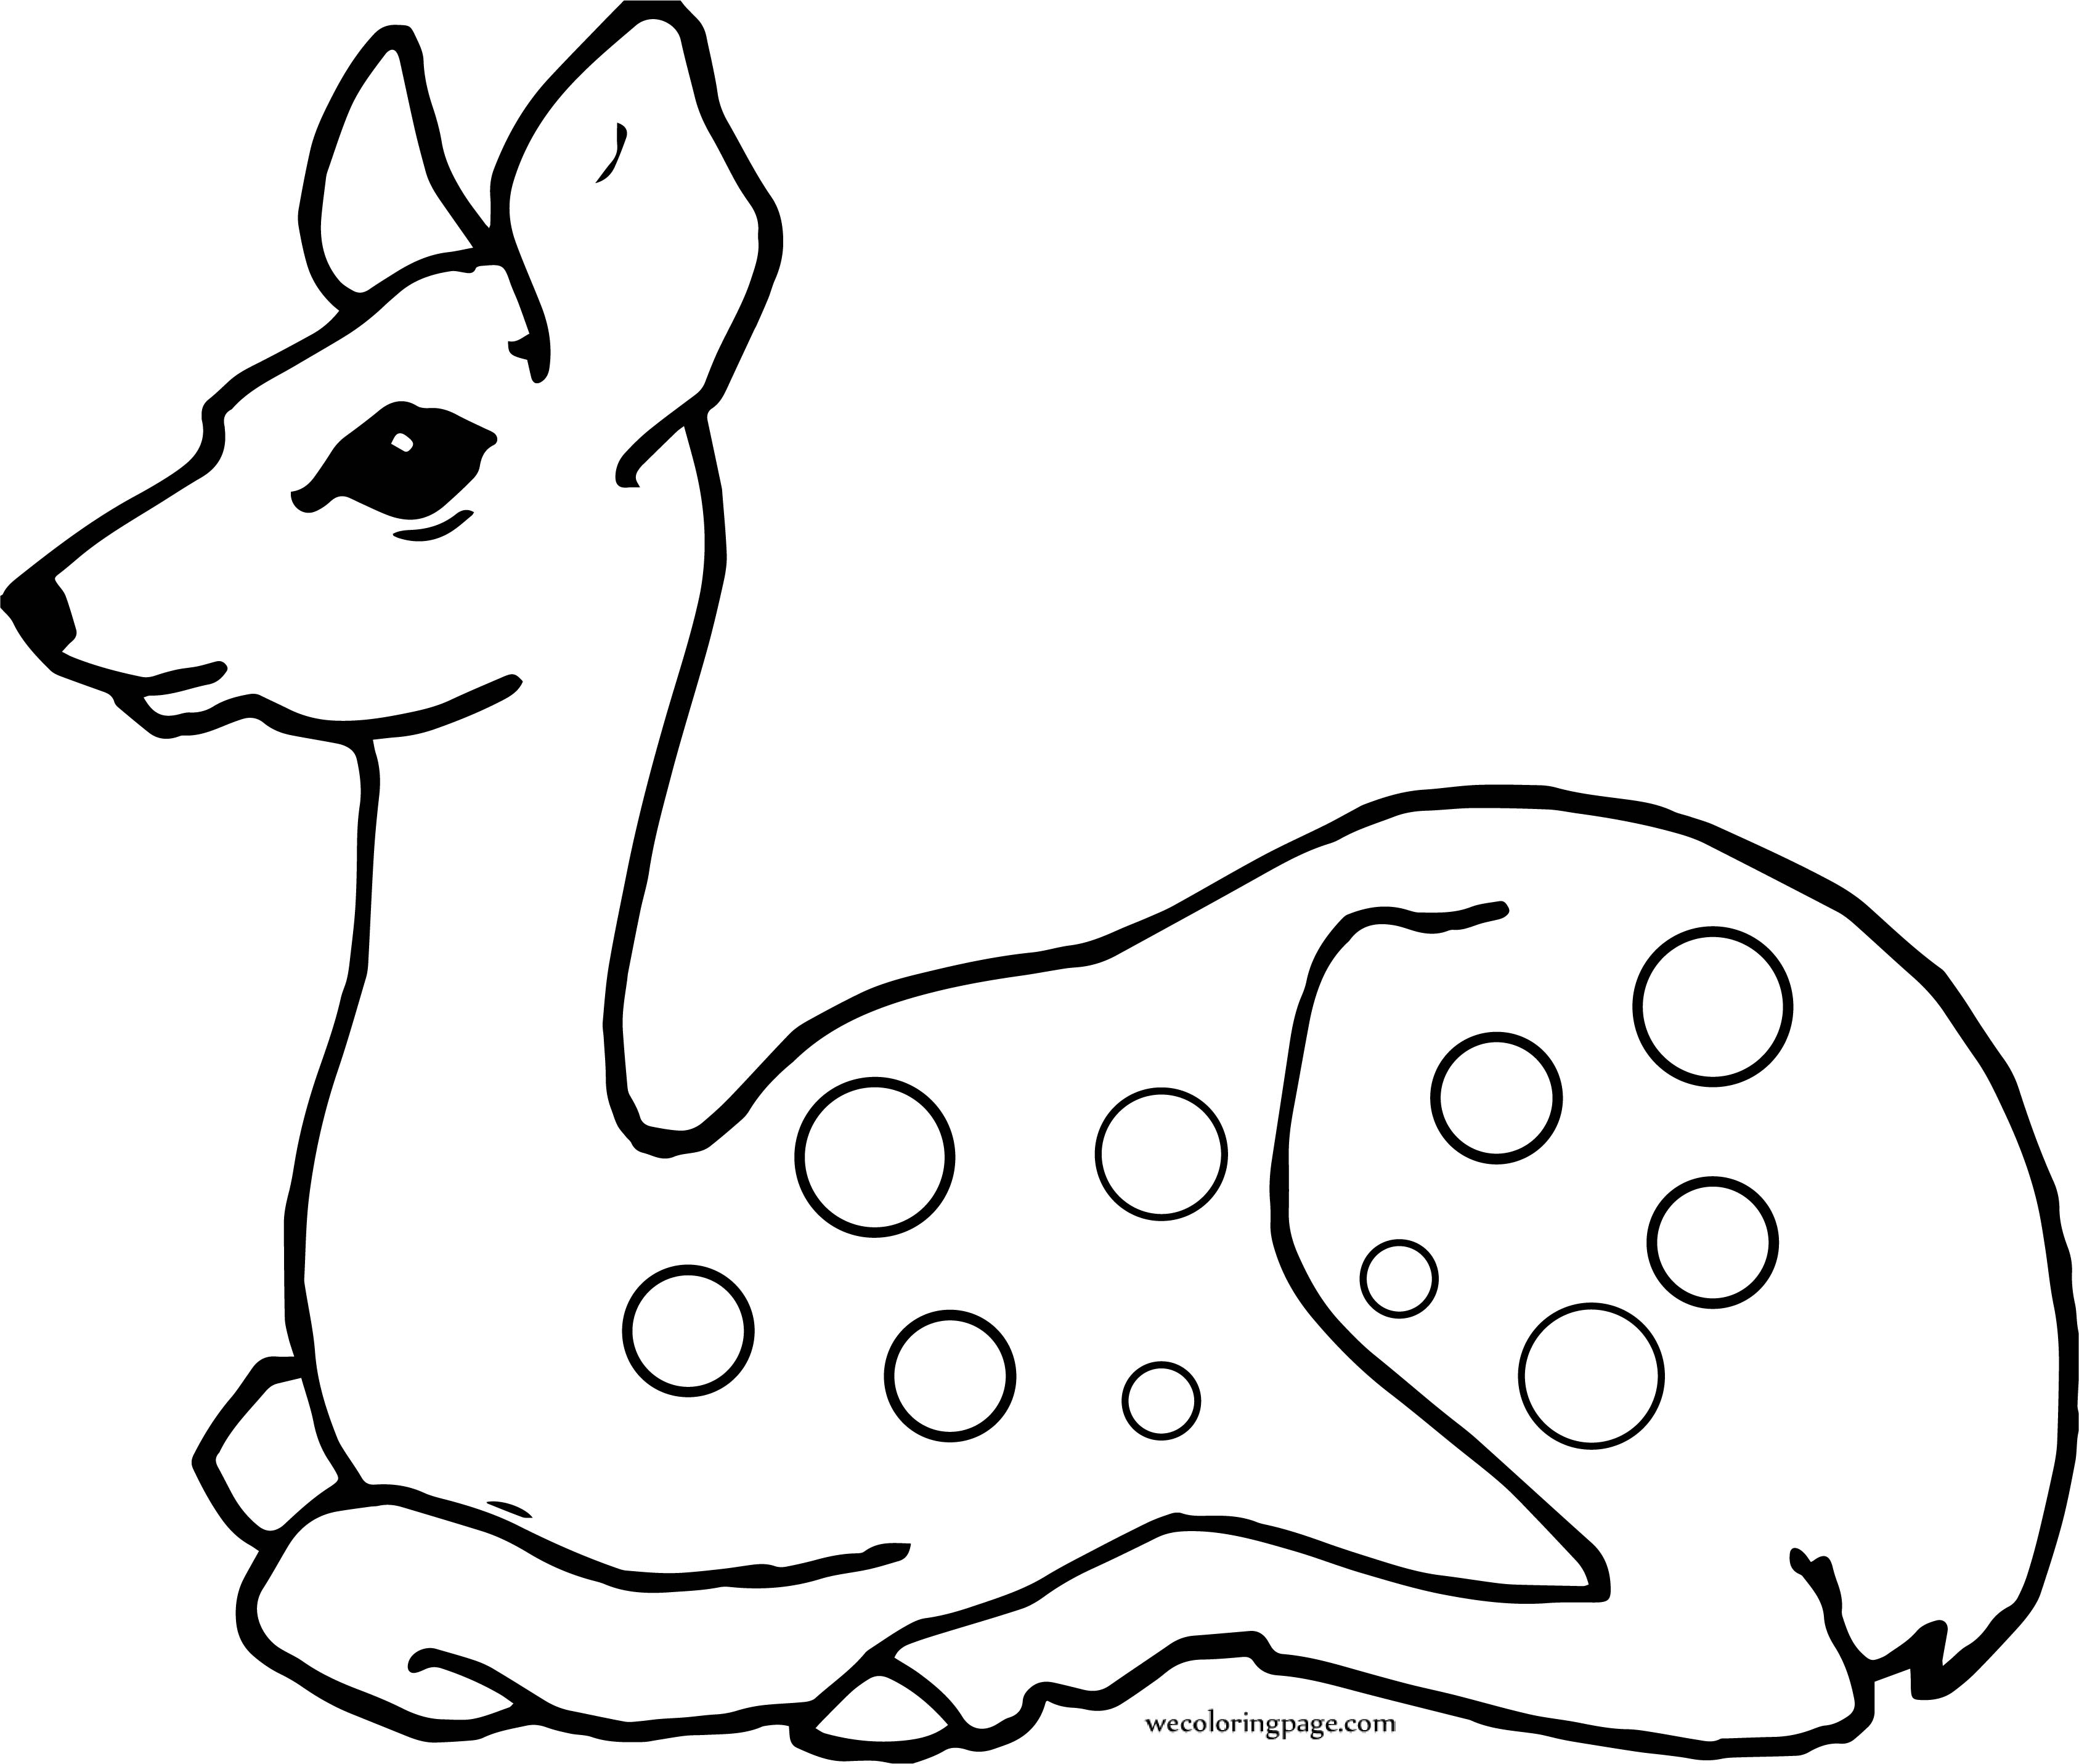 Staying Deer Coloring Page